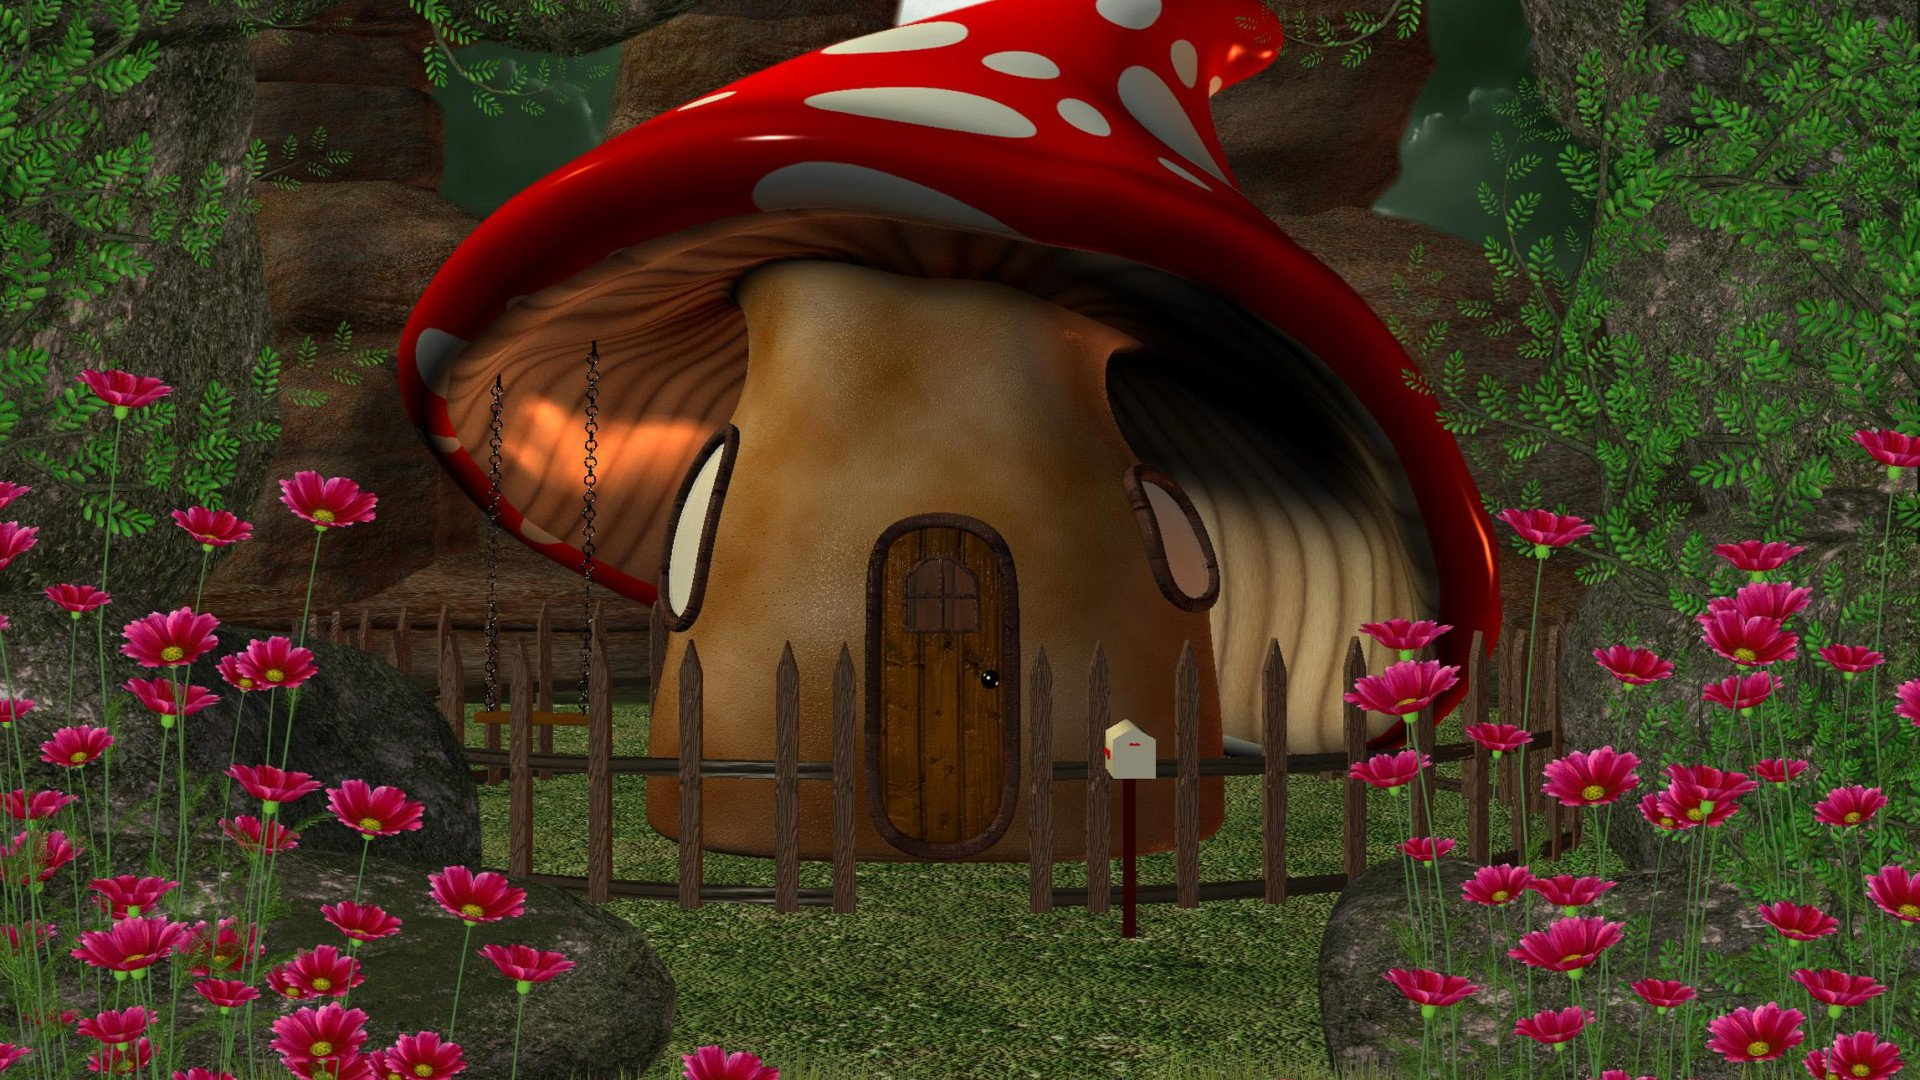 Mushroom House In The Forest Hd Wallpaper